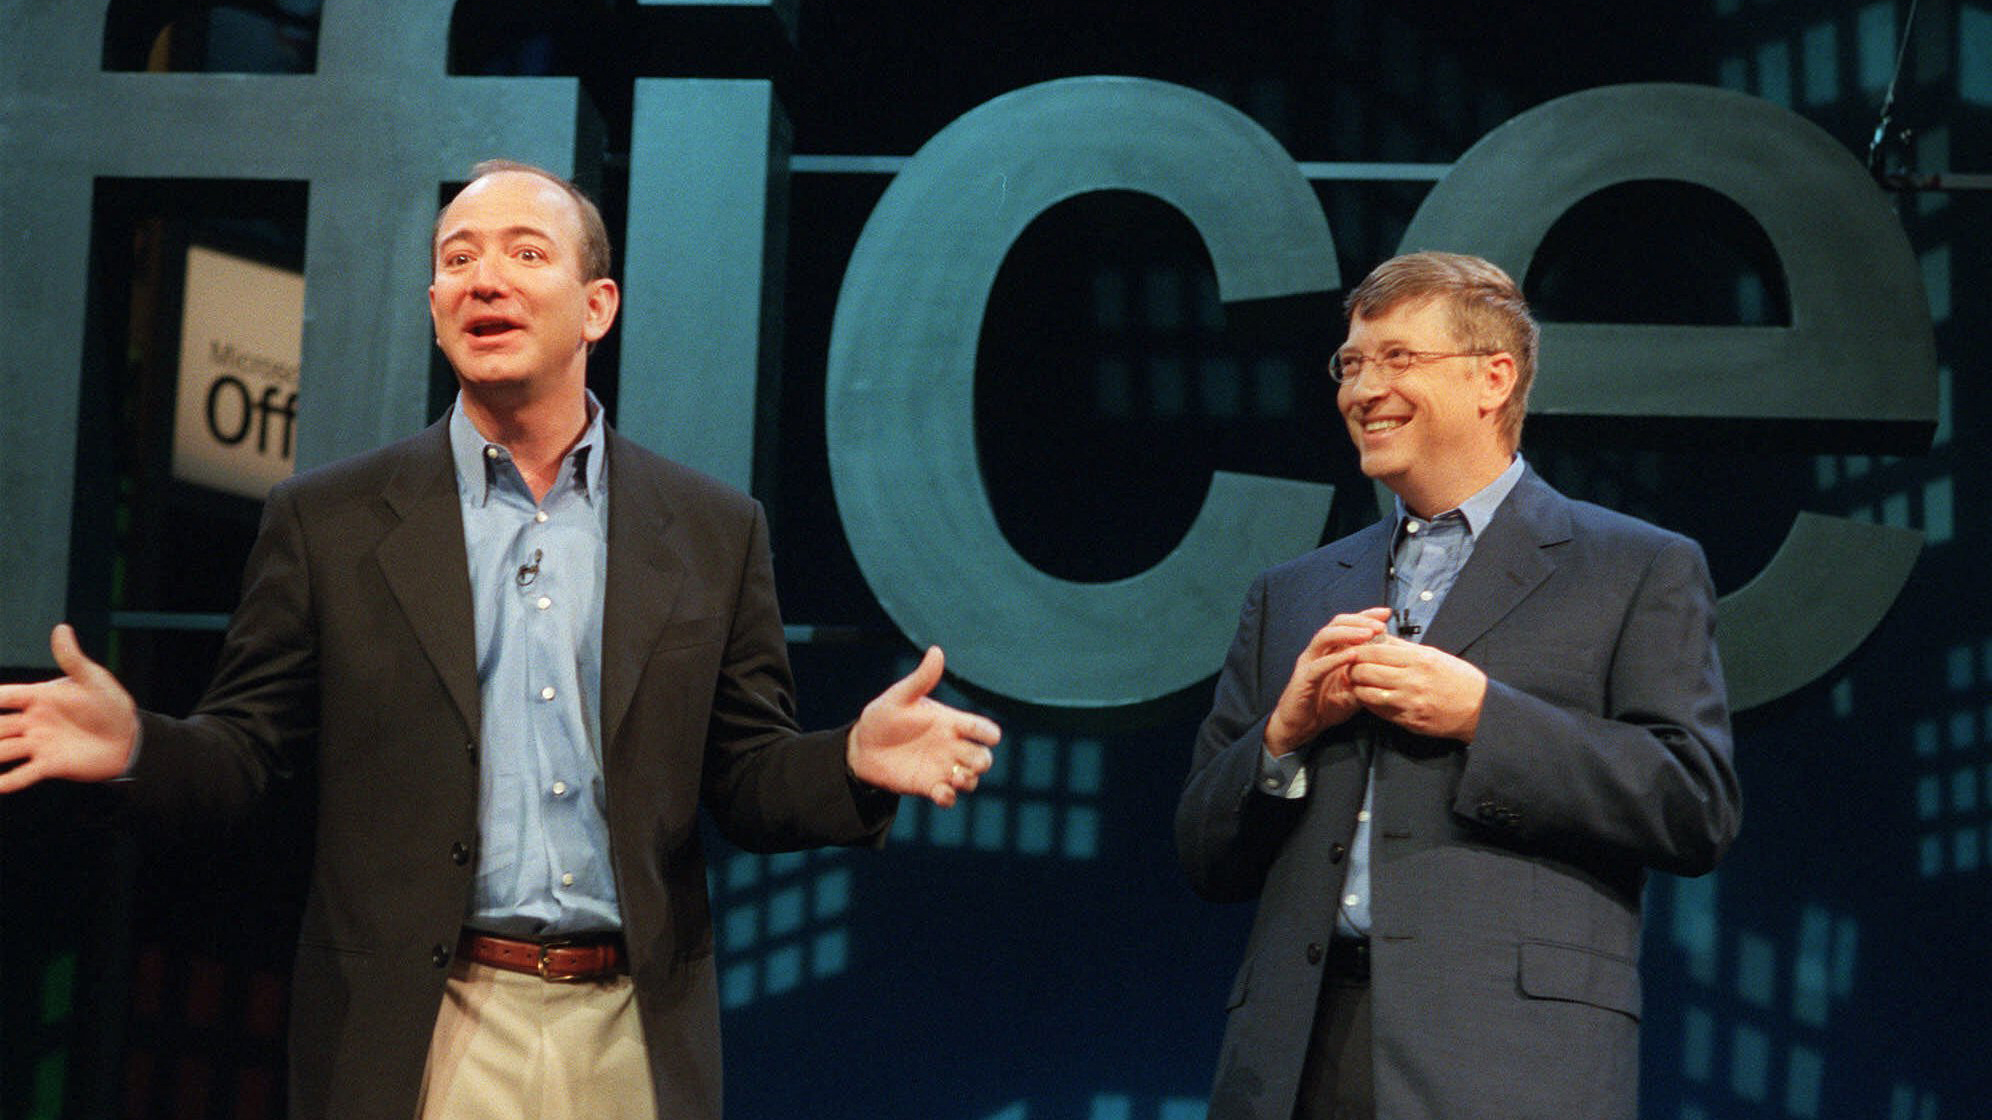 Bill Gates Retook The Title Of The World S Richest Man From Jeff